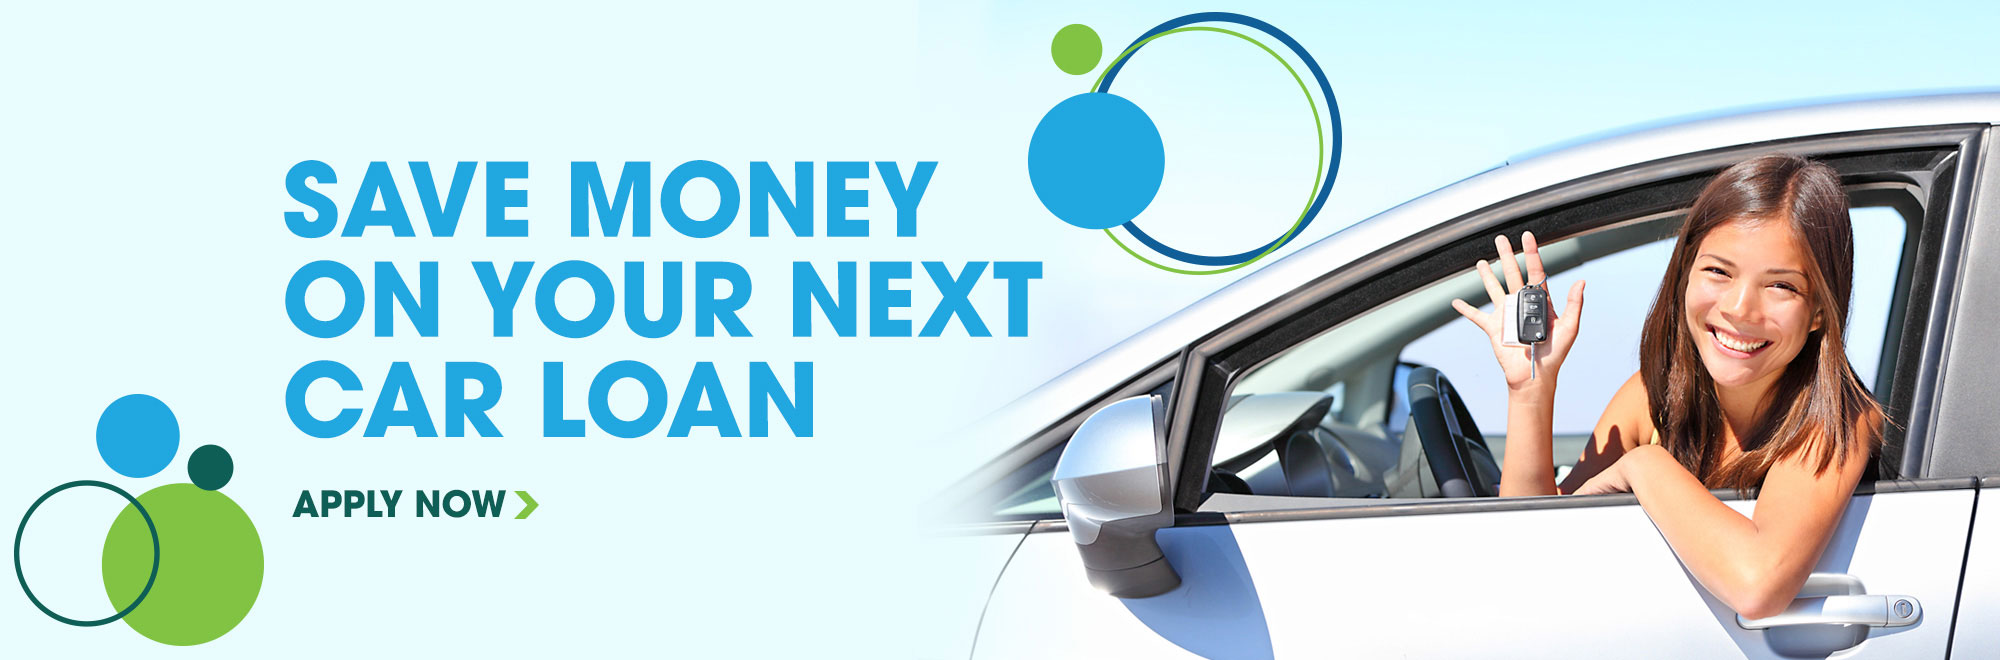 Save Money On Your Next Car Loan. Apply Now!